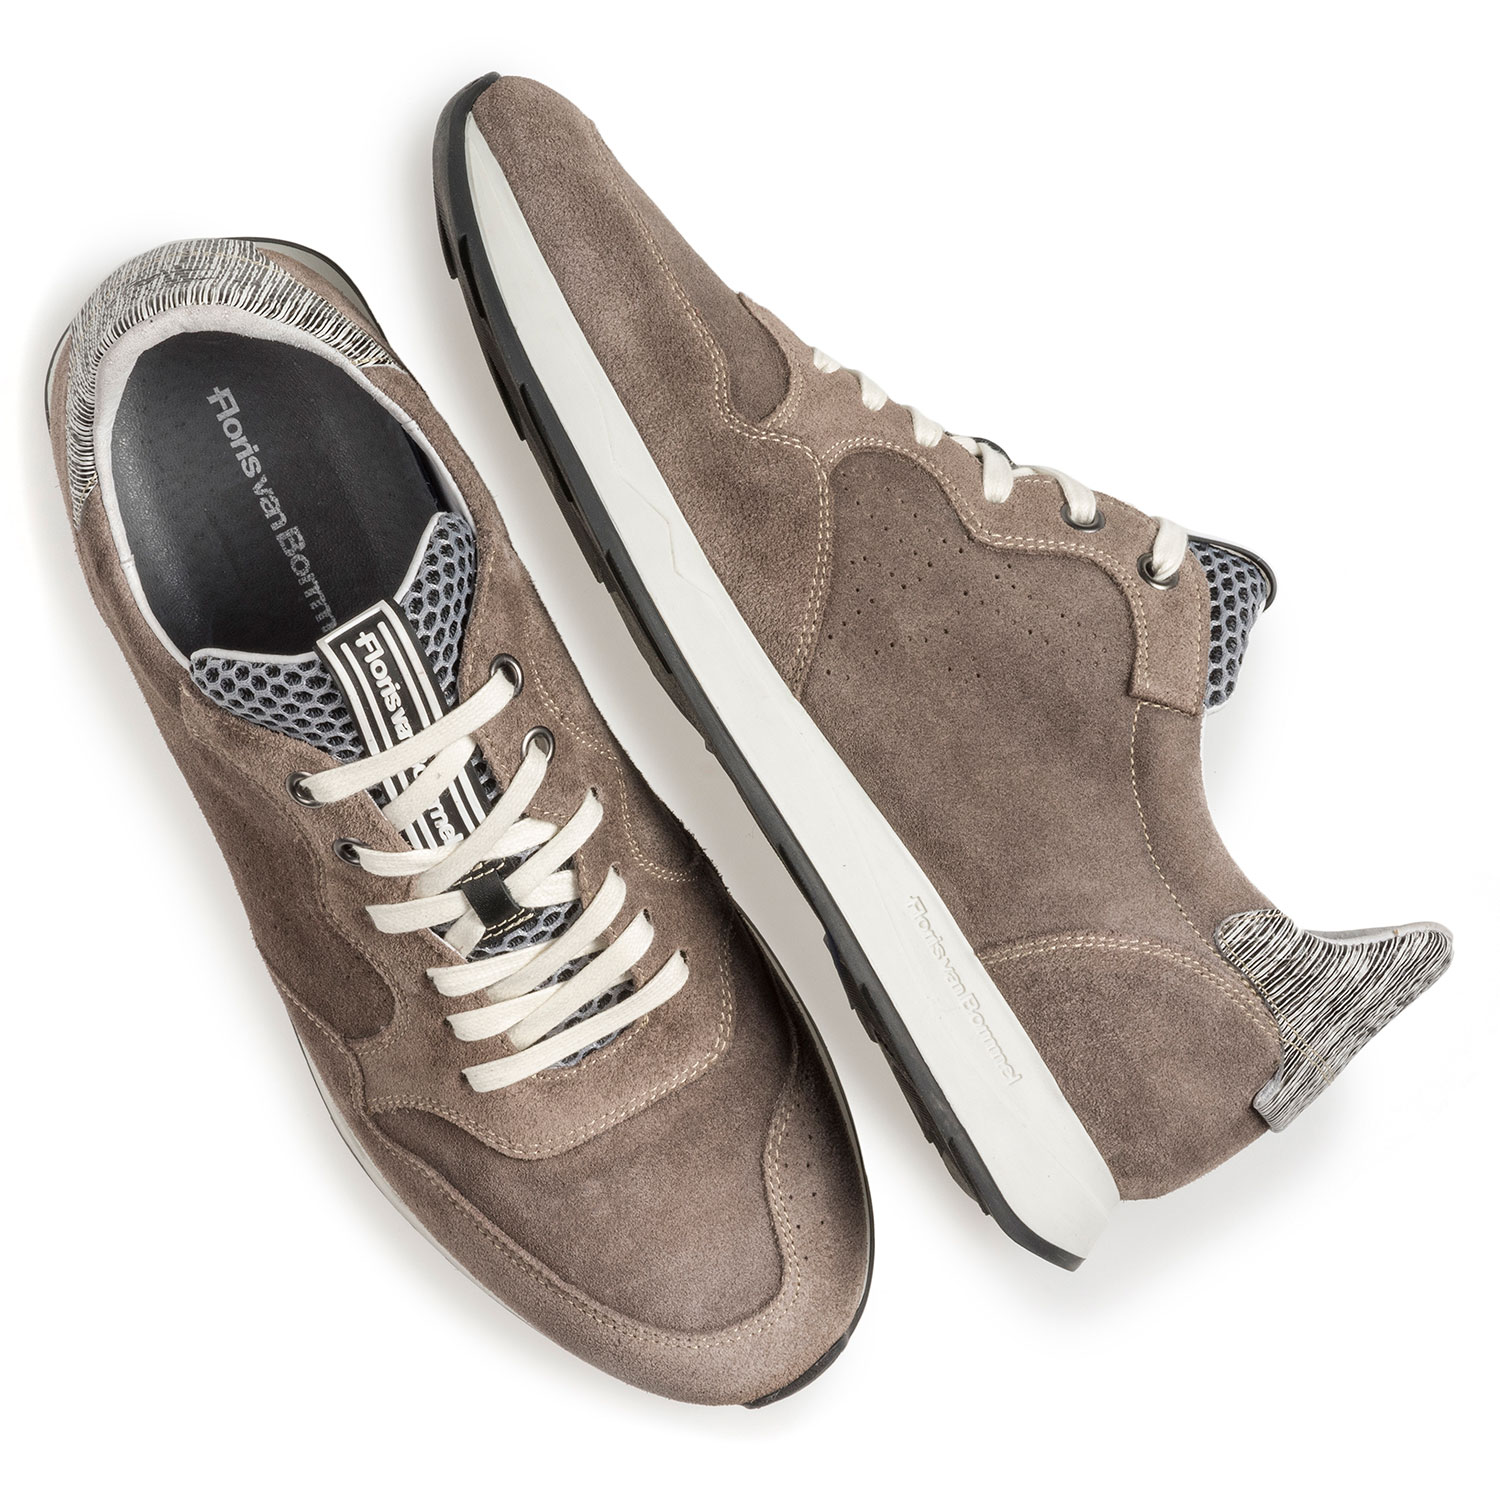 16446/02 - Taupe-coloured suede leather sneaker